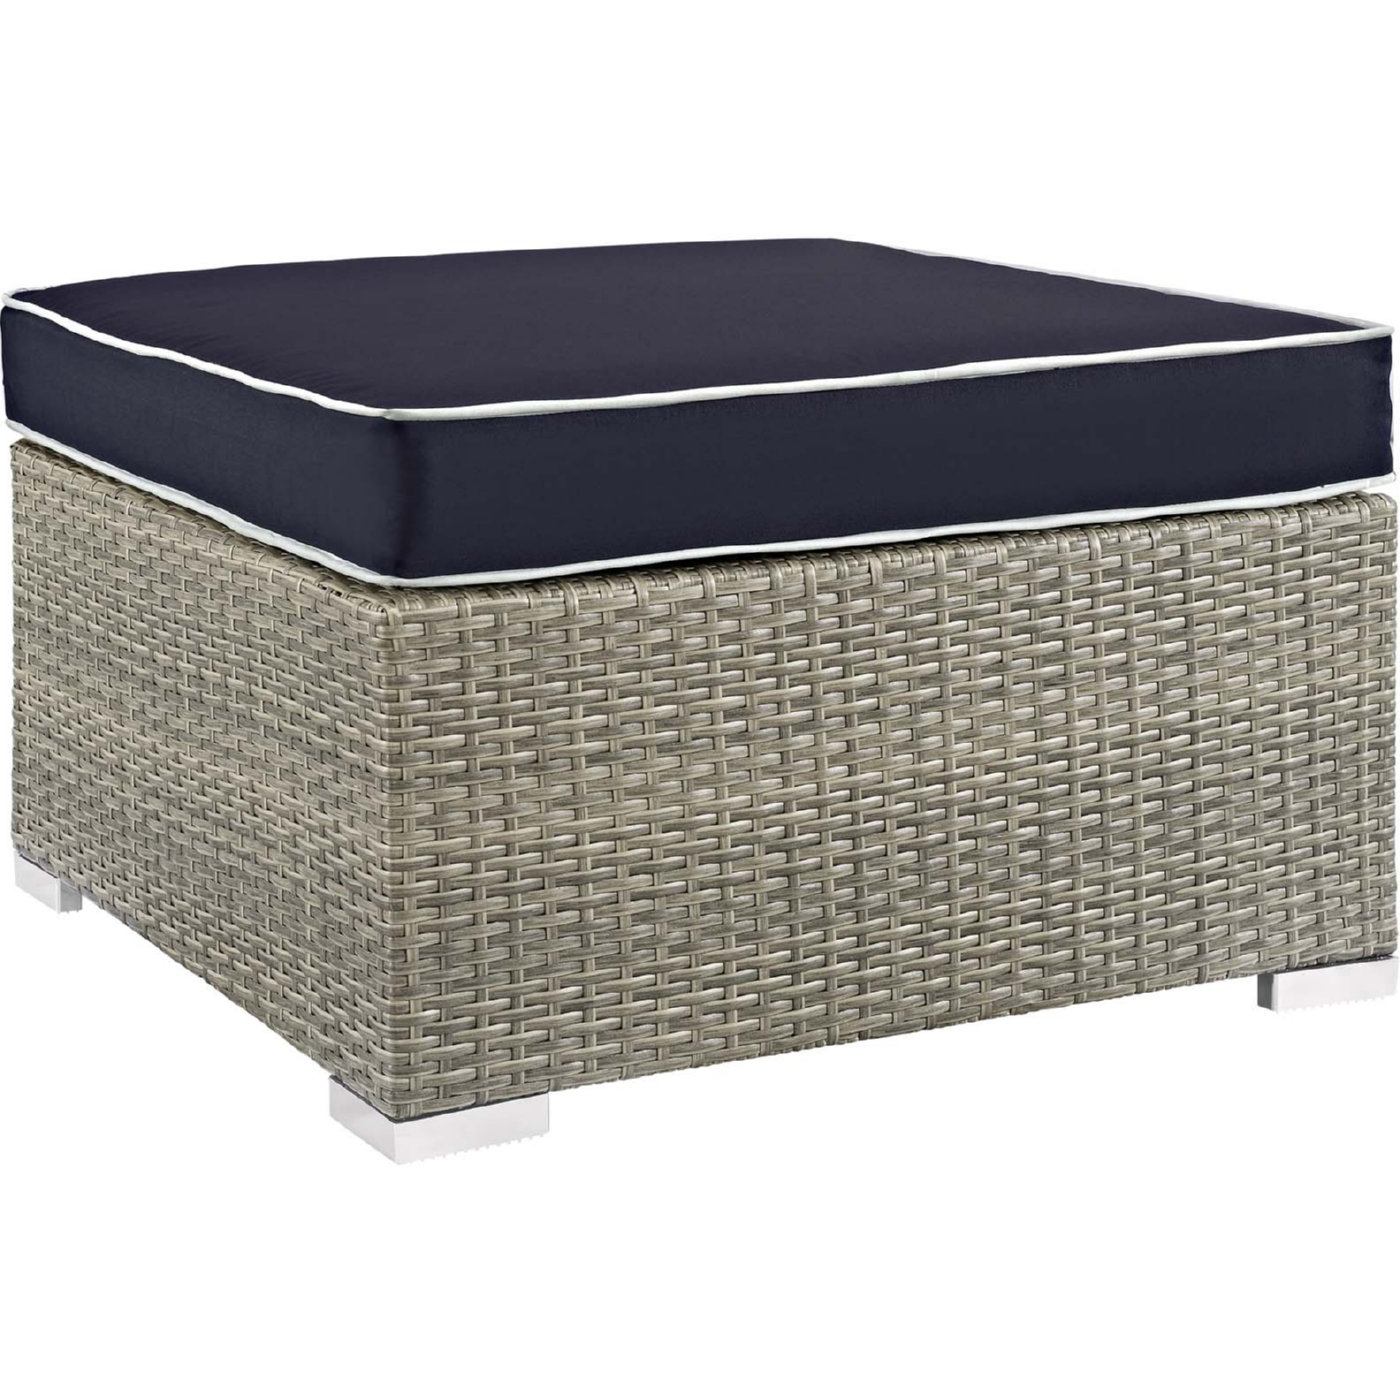 Amazing Repose Outdoor Ottoman In Poly Rattan Navy Fabric By Modway Machost Co Dining Chair Design Ideas Machostcouk